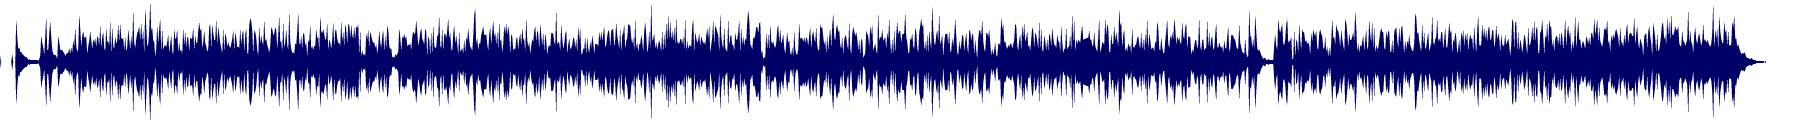 waveform of track #70154